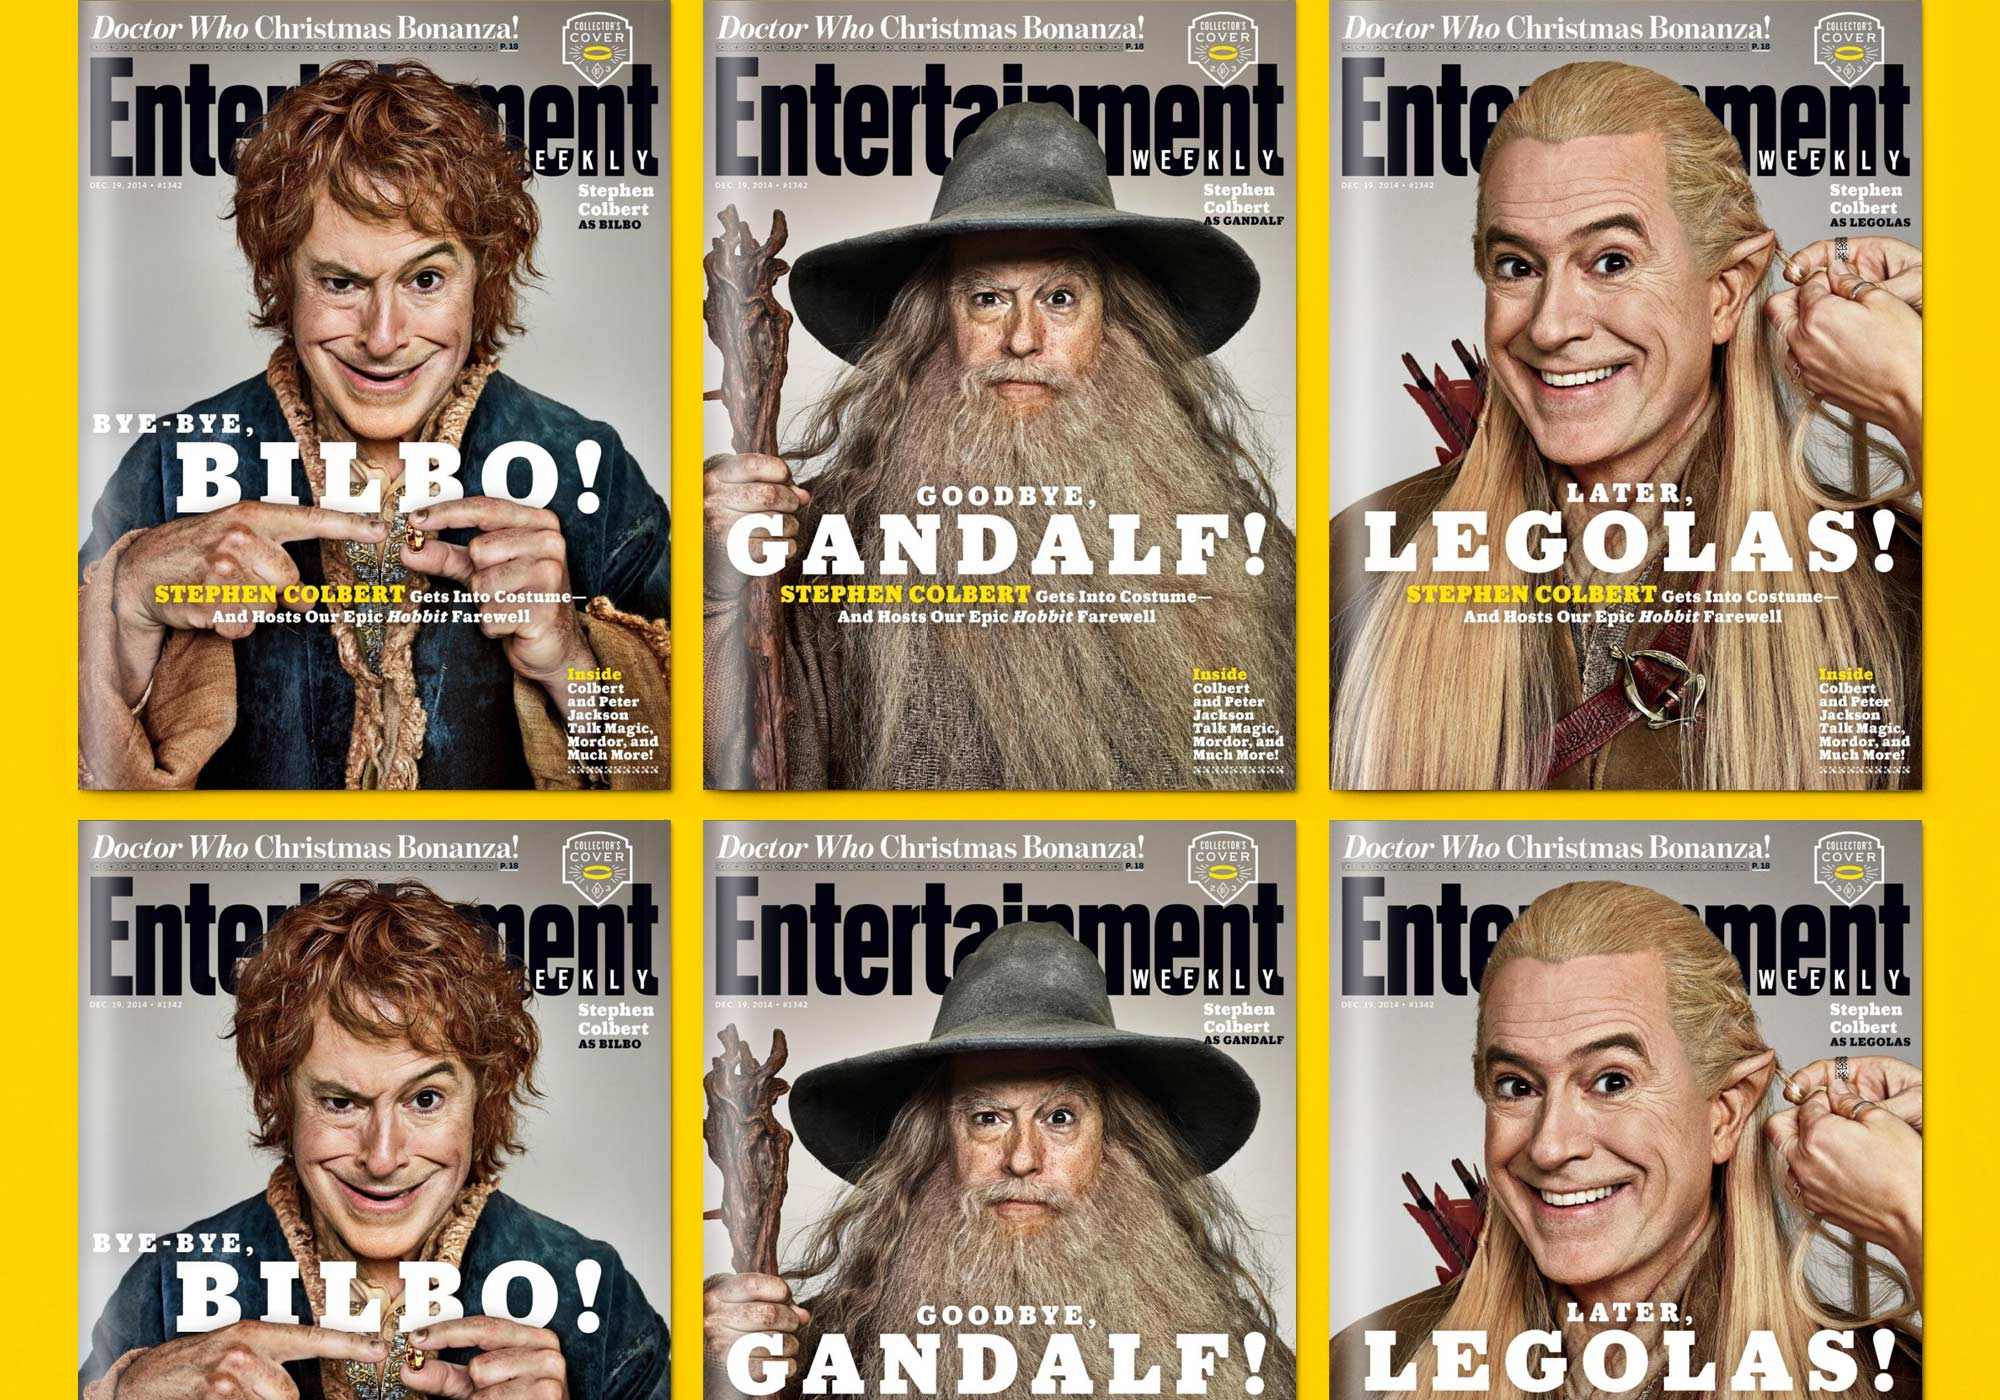 Entertainment Weekly Hobbit Covers